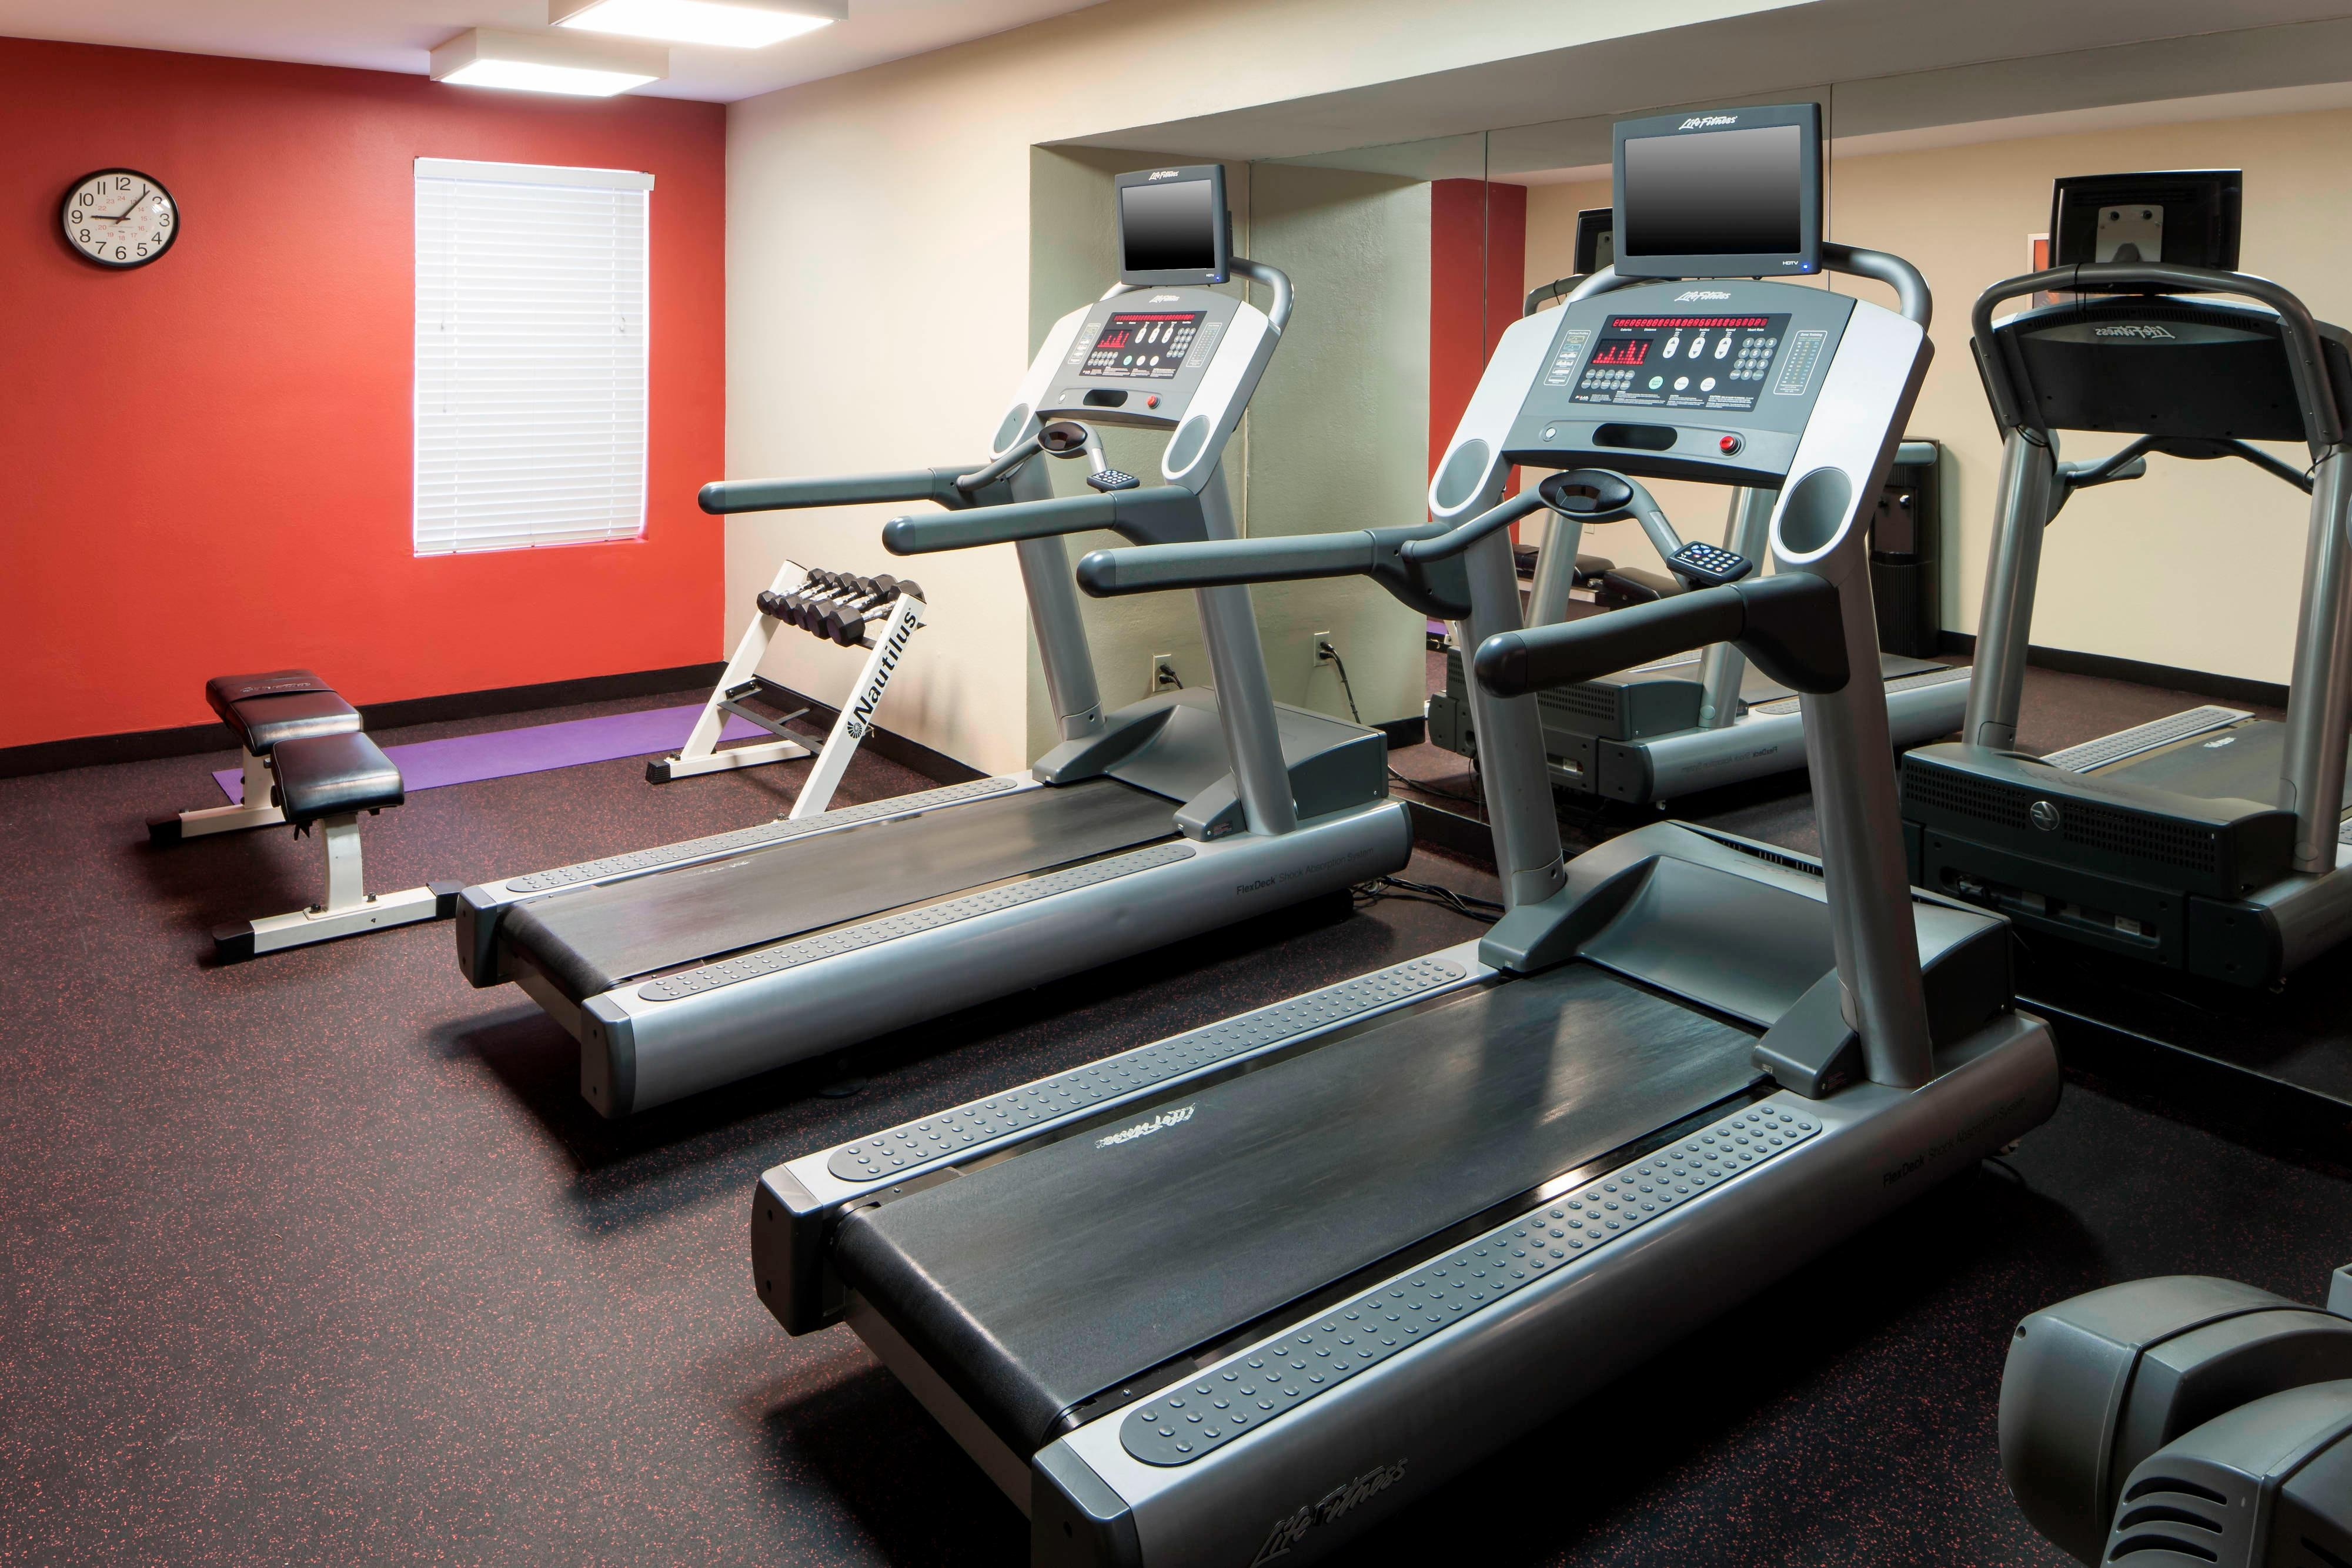 TownePlace Suites Arlington Fitness Center